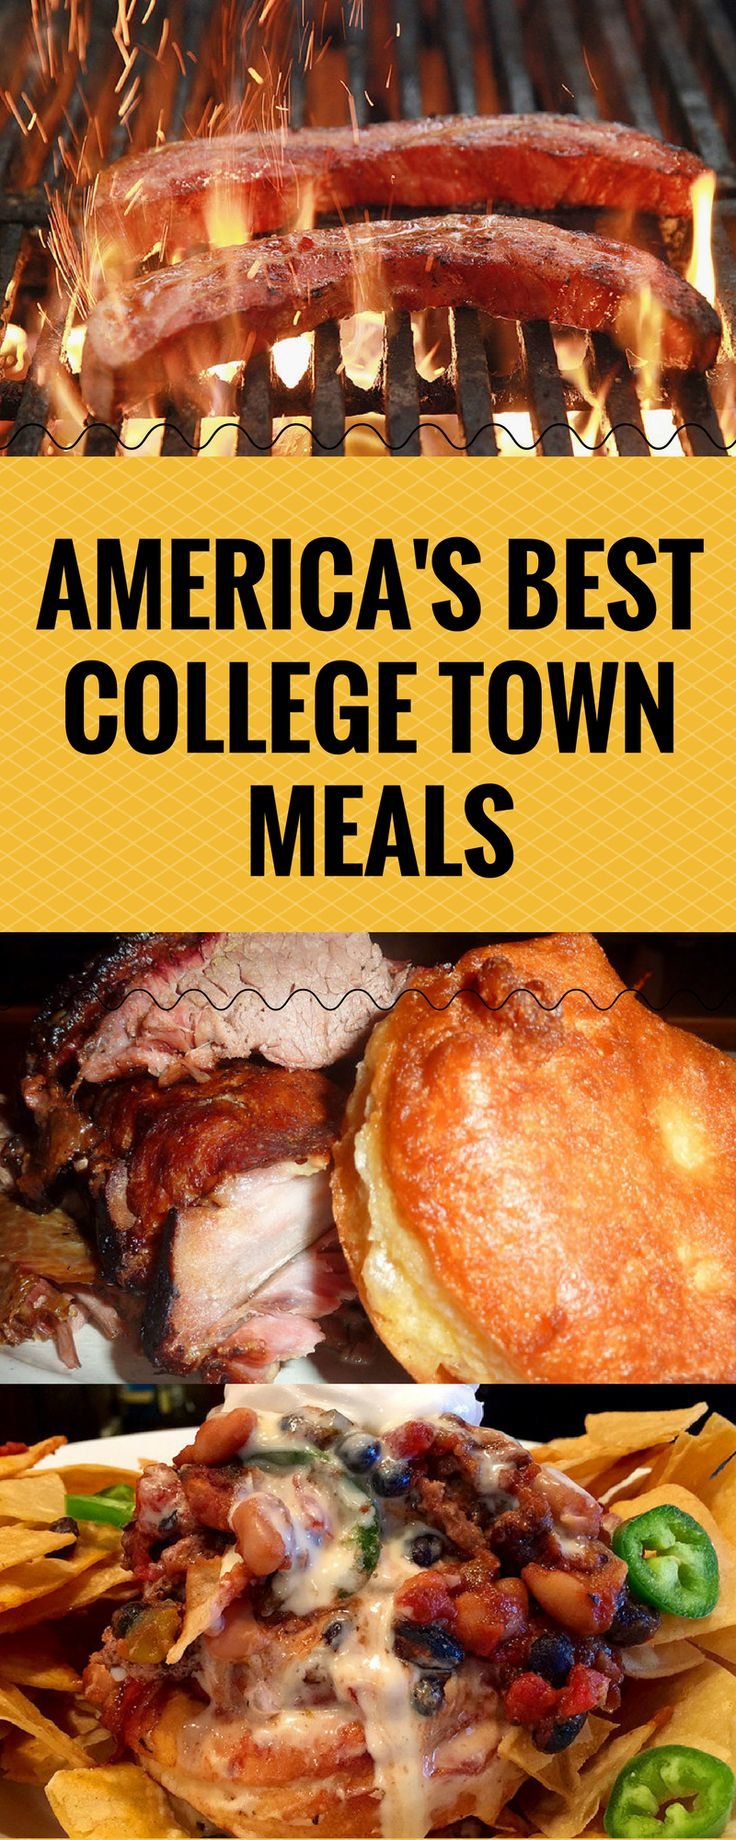 Xtreme Fat Loss - AMERICA'S BEST COLLEGE TOWN MEALS ] Completely Transform Your Body To Look Your Best Ever In ONLY 25 Days With The Most Strategic, Fastest New Year's Fat Loss Program EVER Developed—All While Eating WHATEVER You Want Every 5 Days...